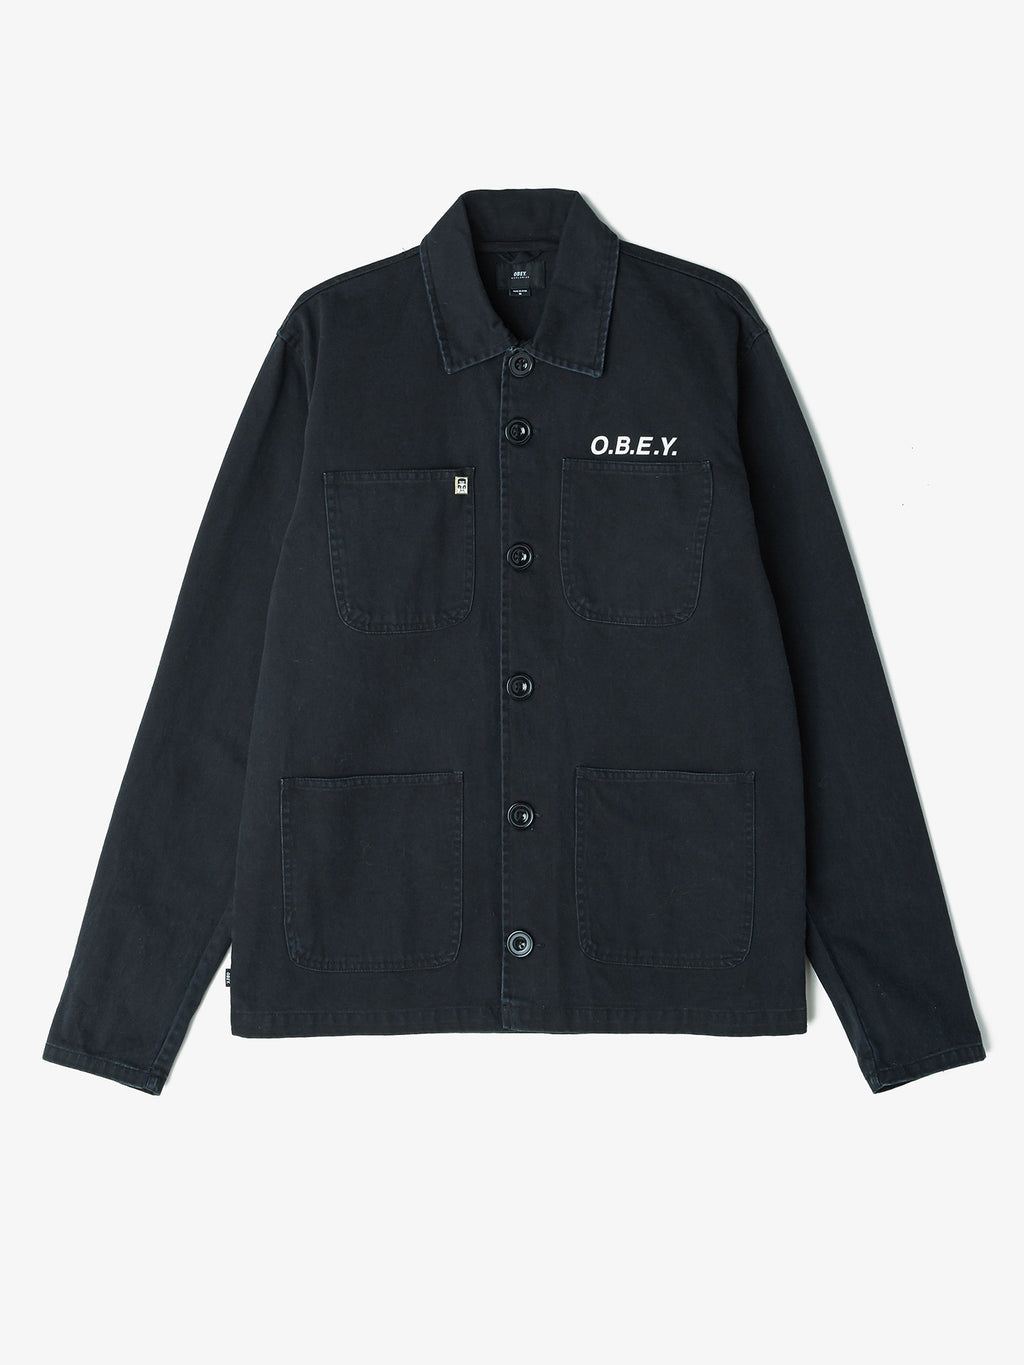 Obey Wasteline Jacket Light Jackets Ascent Wear - 2